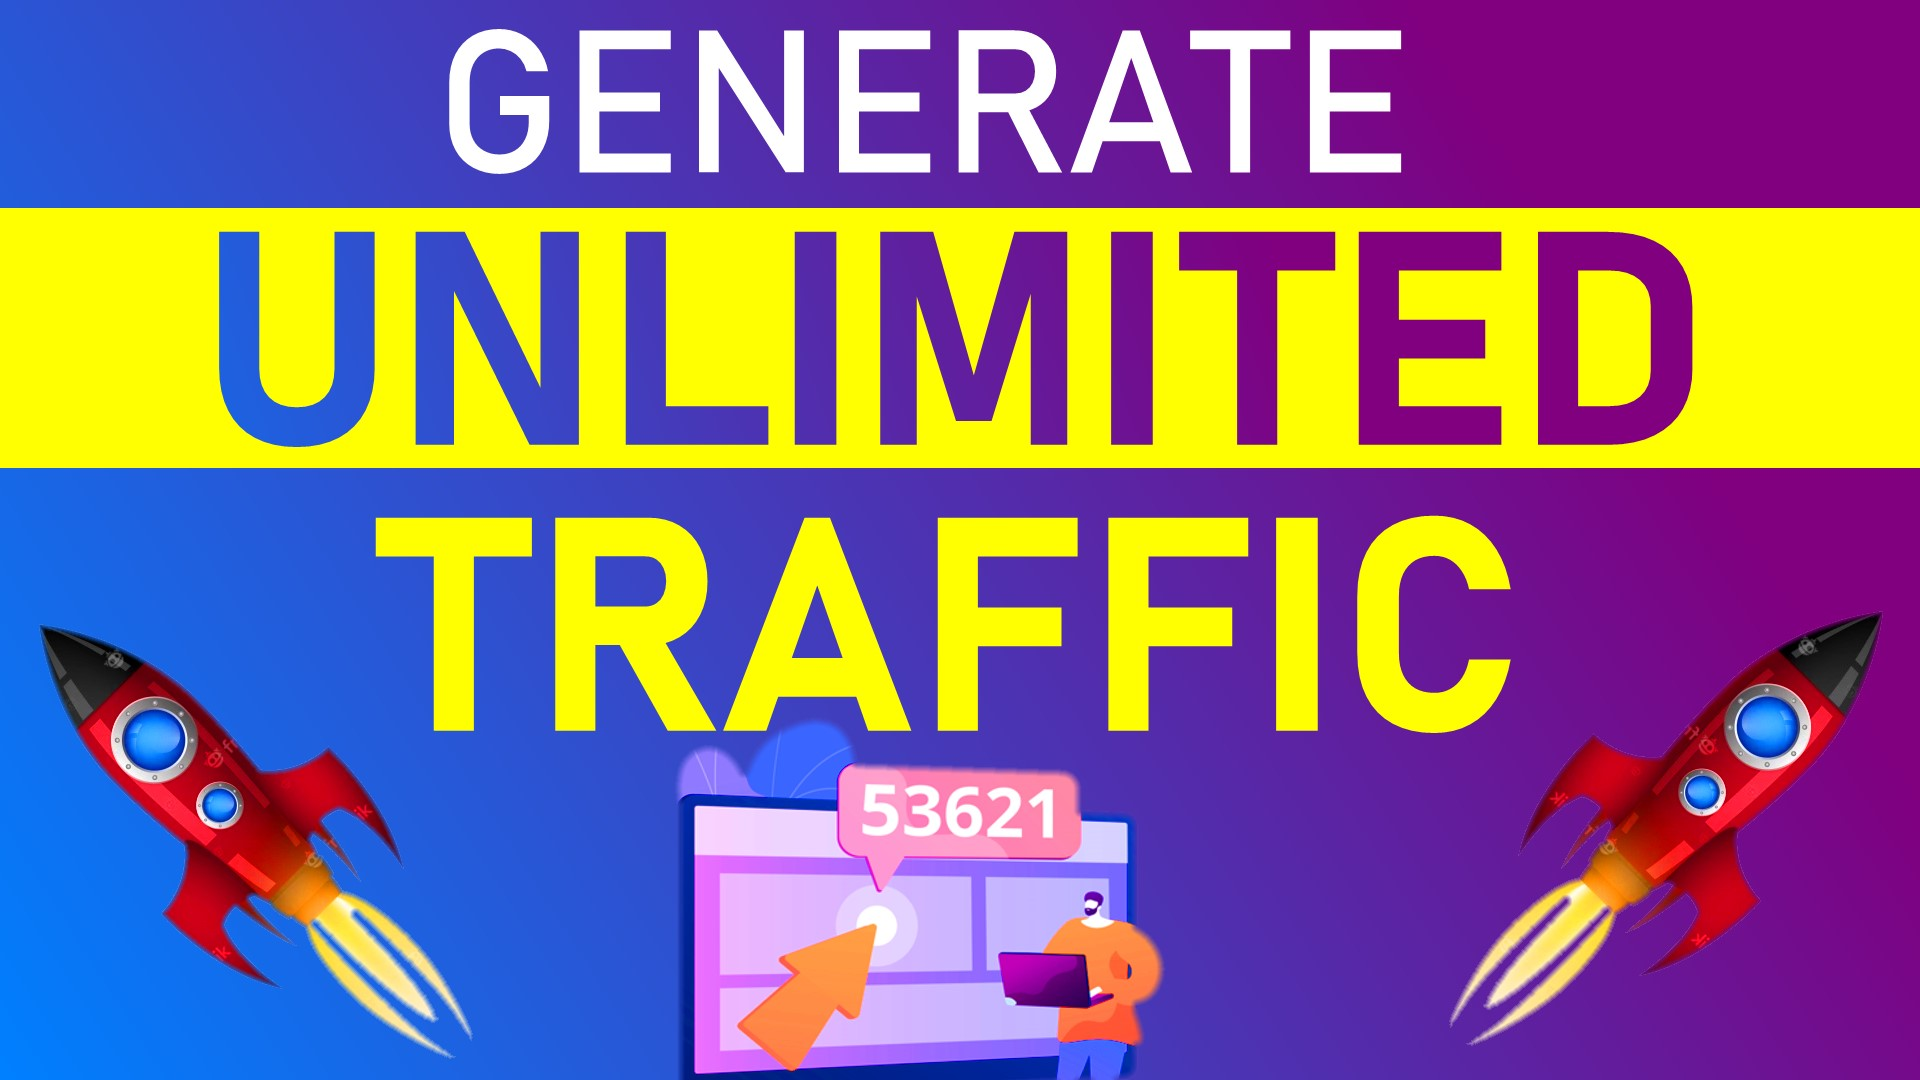 Generate Unlimited Traffic for any website No proxies needed